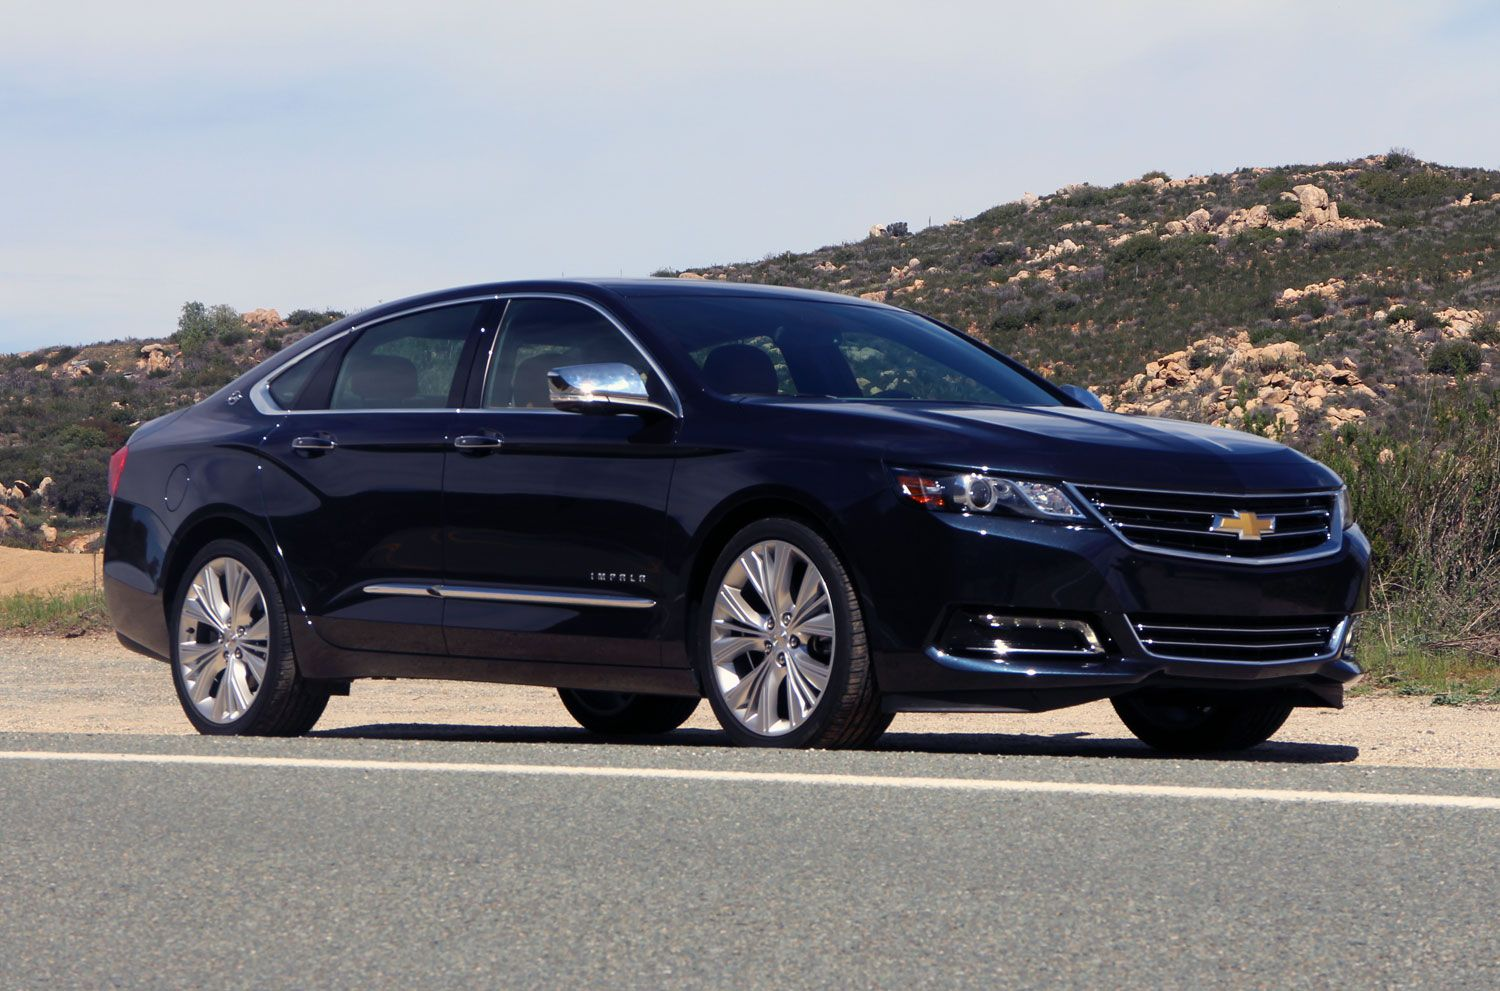 2014 chevrolet impala specs and price a midsize car like 2014 chevrolet impala will be a wonderful everyday car that you should consider to have